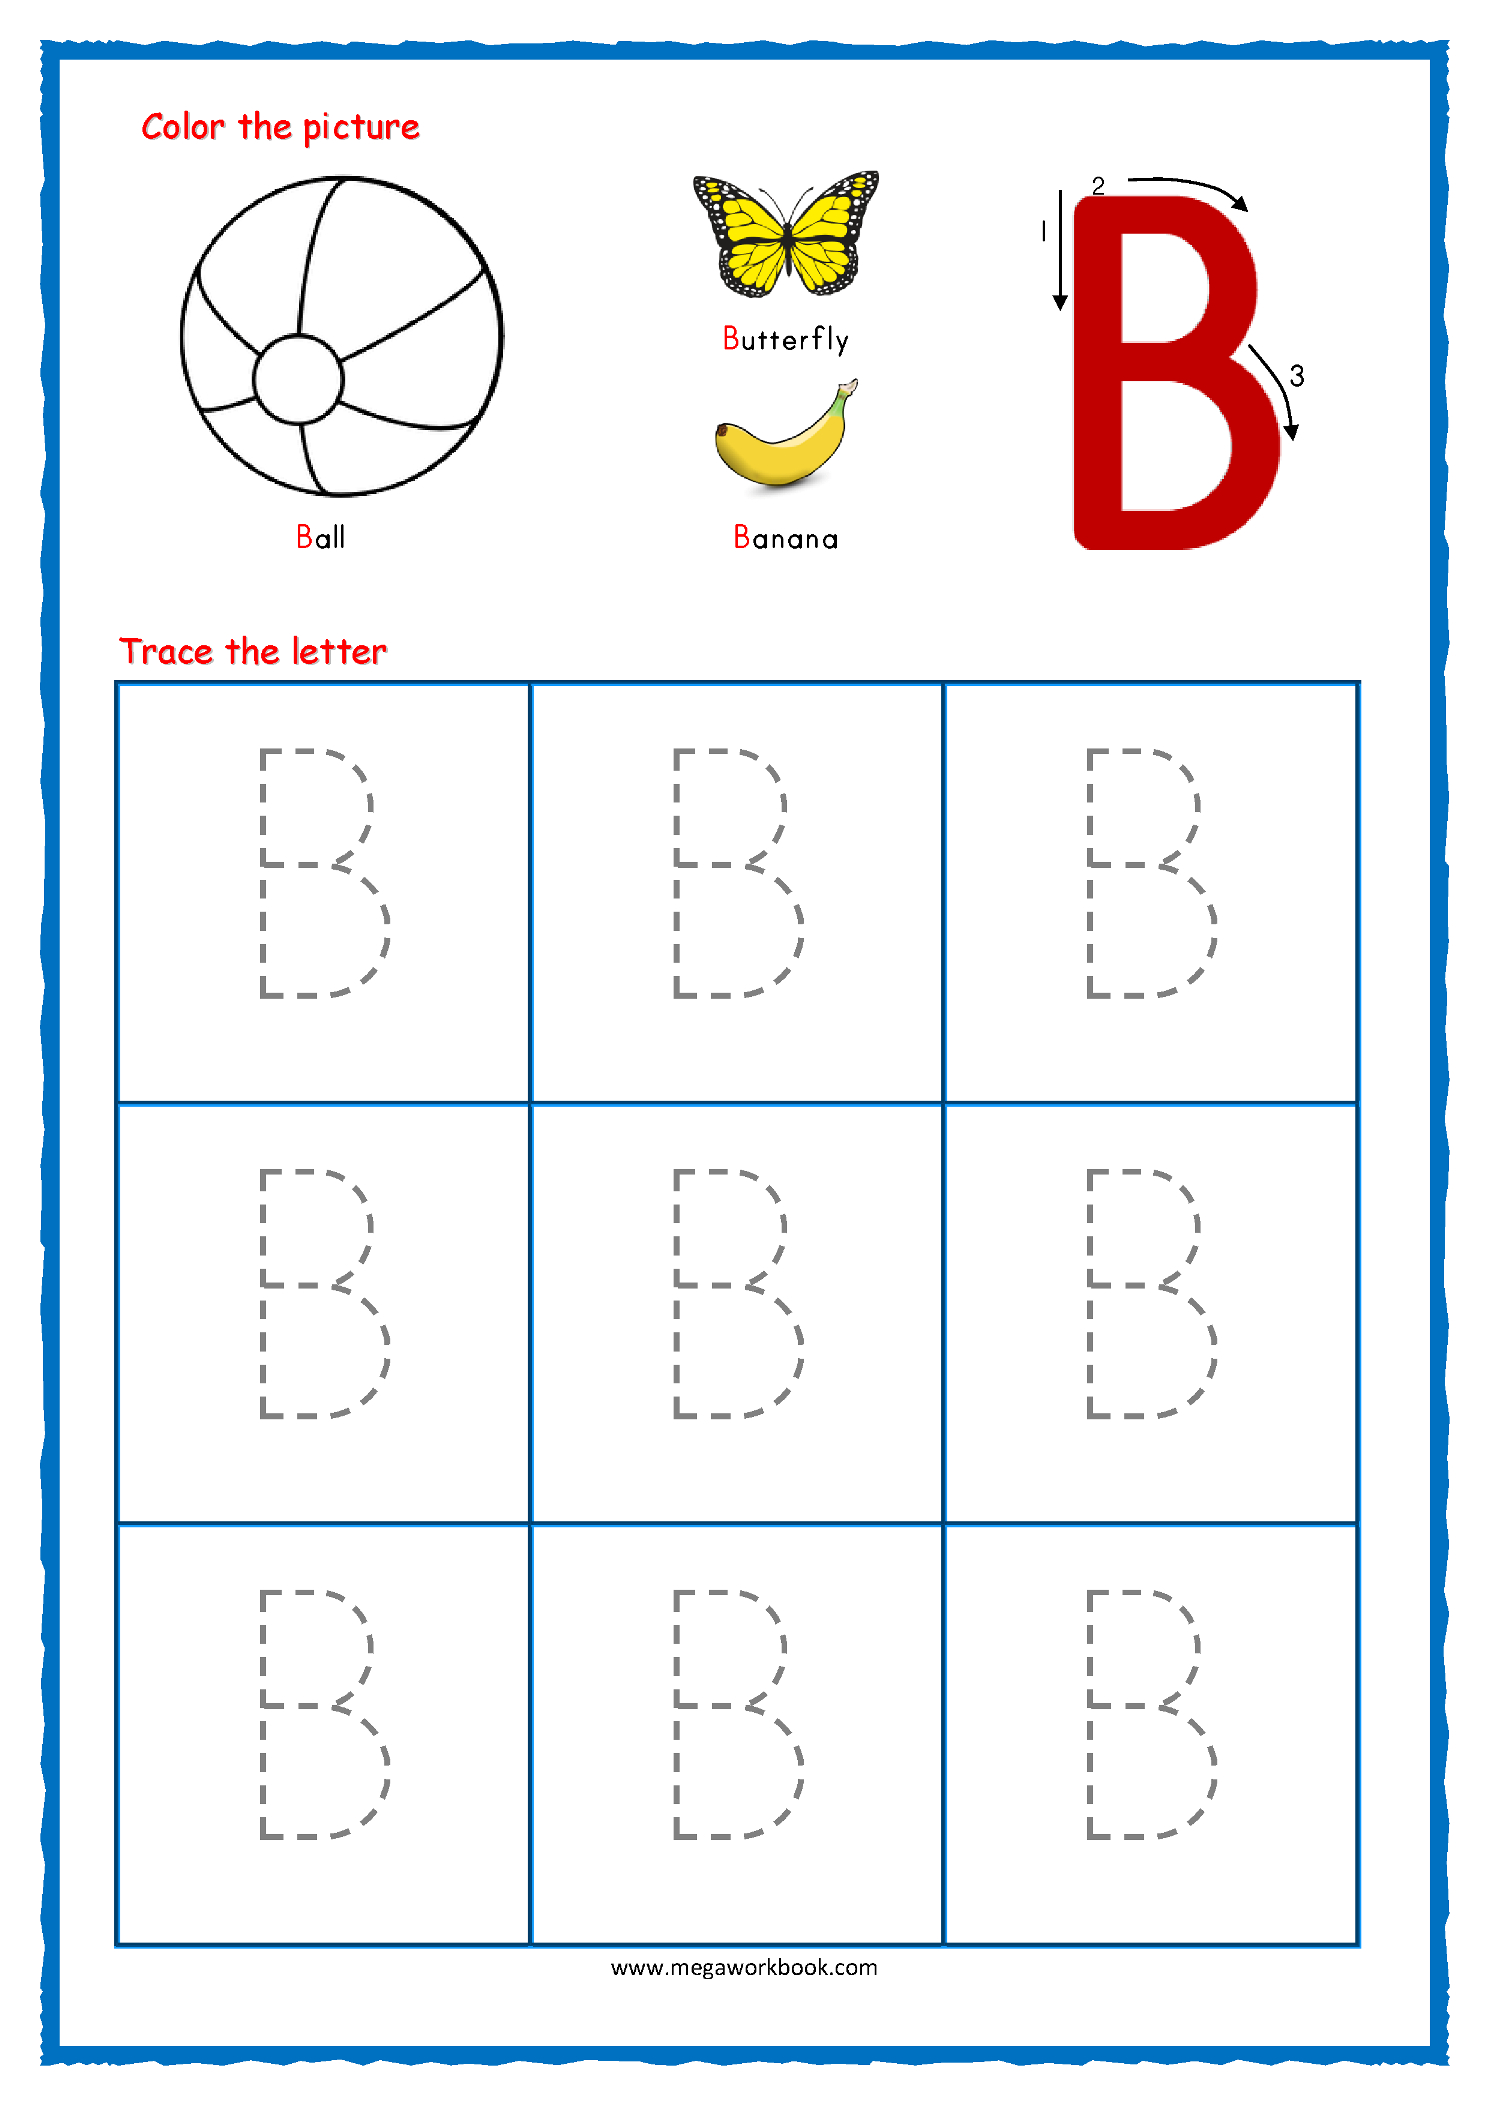 Tracing Letters - Alphabet Tracing - Capital Letters with regard to B Letter Tracing